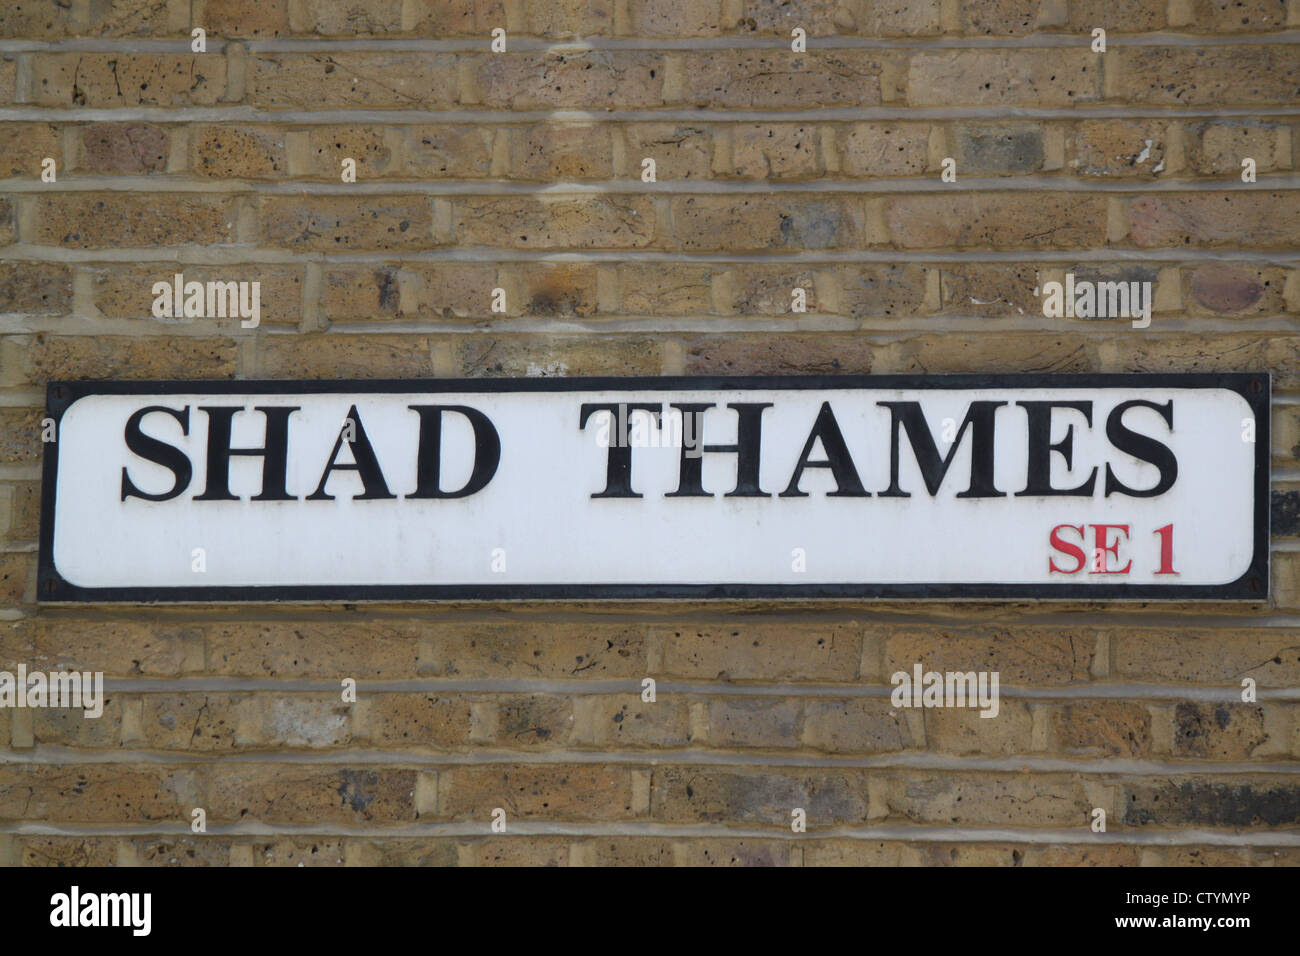 Street sign for Shad Thames London - Stock Image